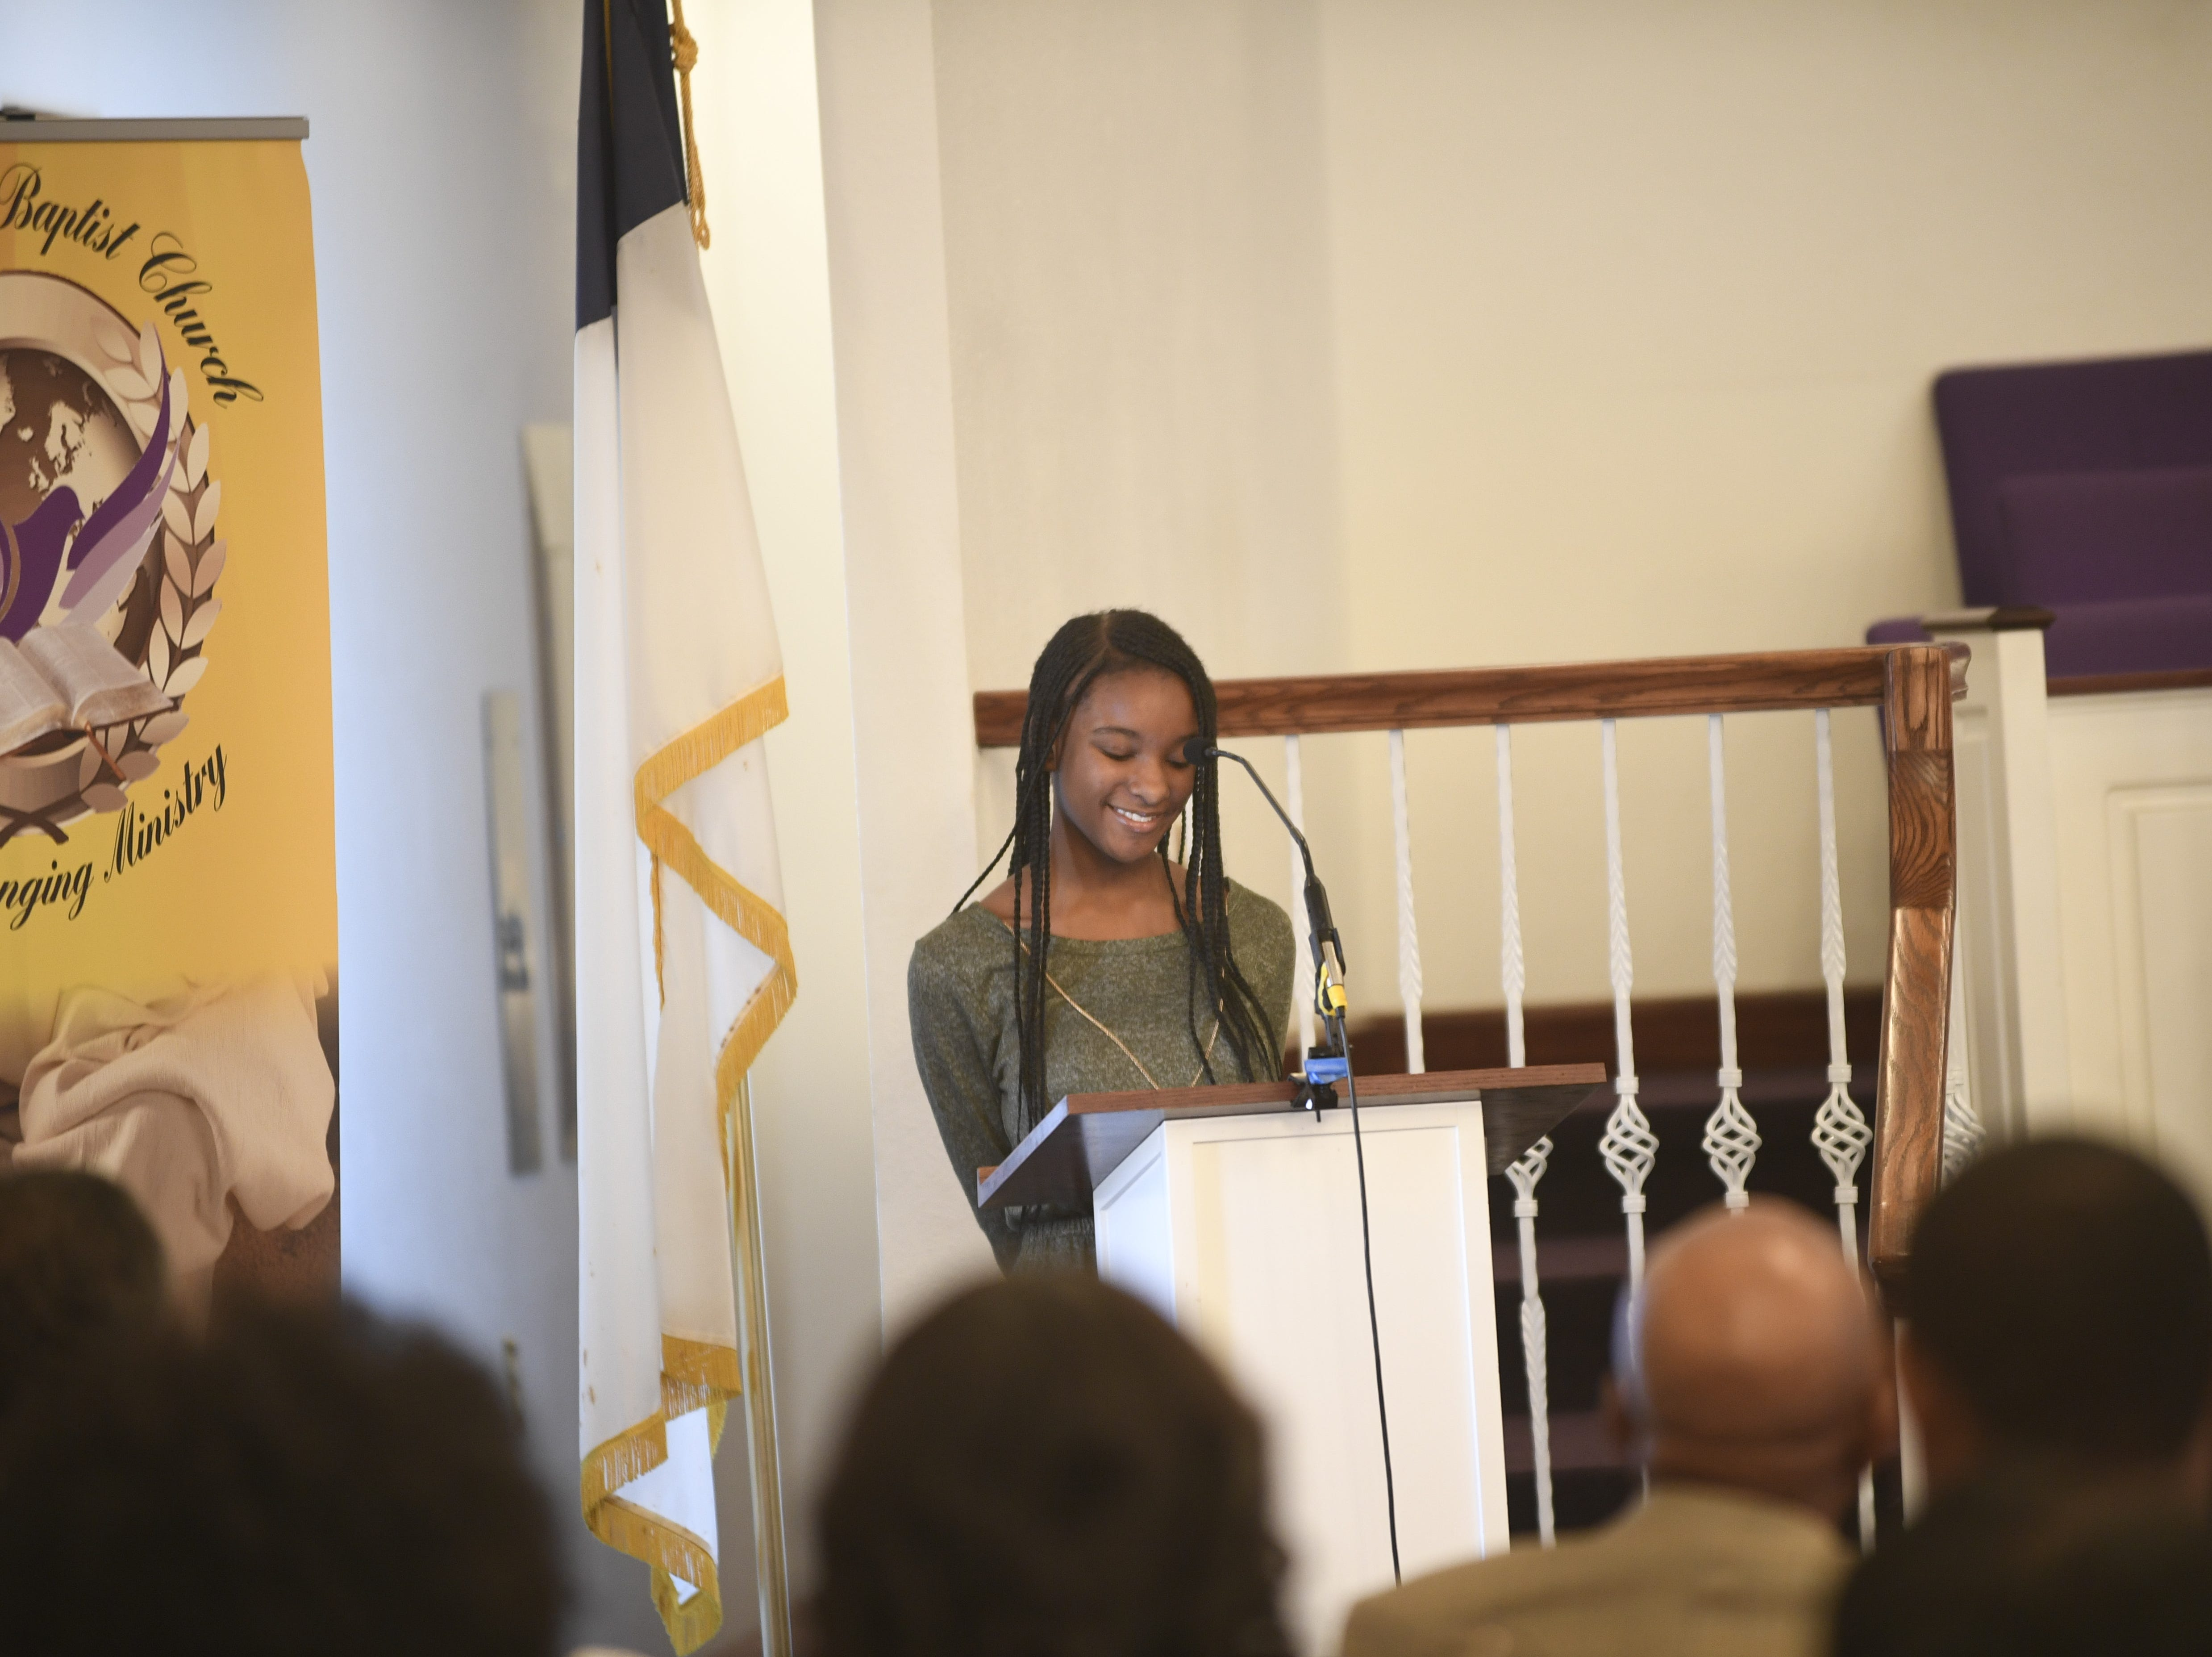 Jaliah Anderson addresses the crowd during Mt. Pleasant Church's Black History Month event, in Pinson, Tenn. Feb 24, 2019.